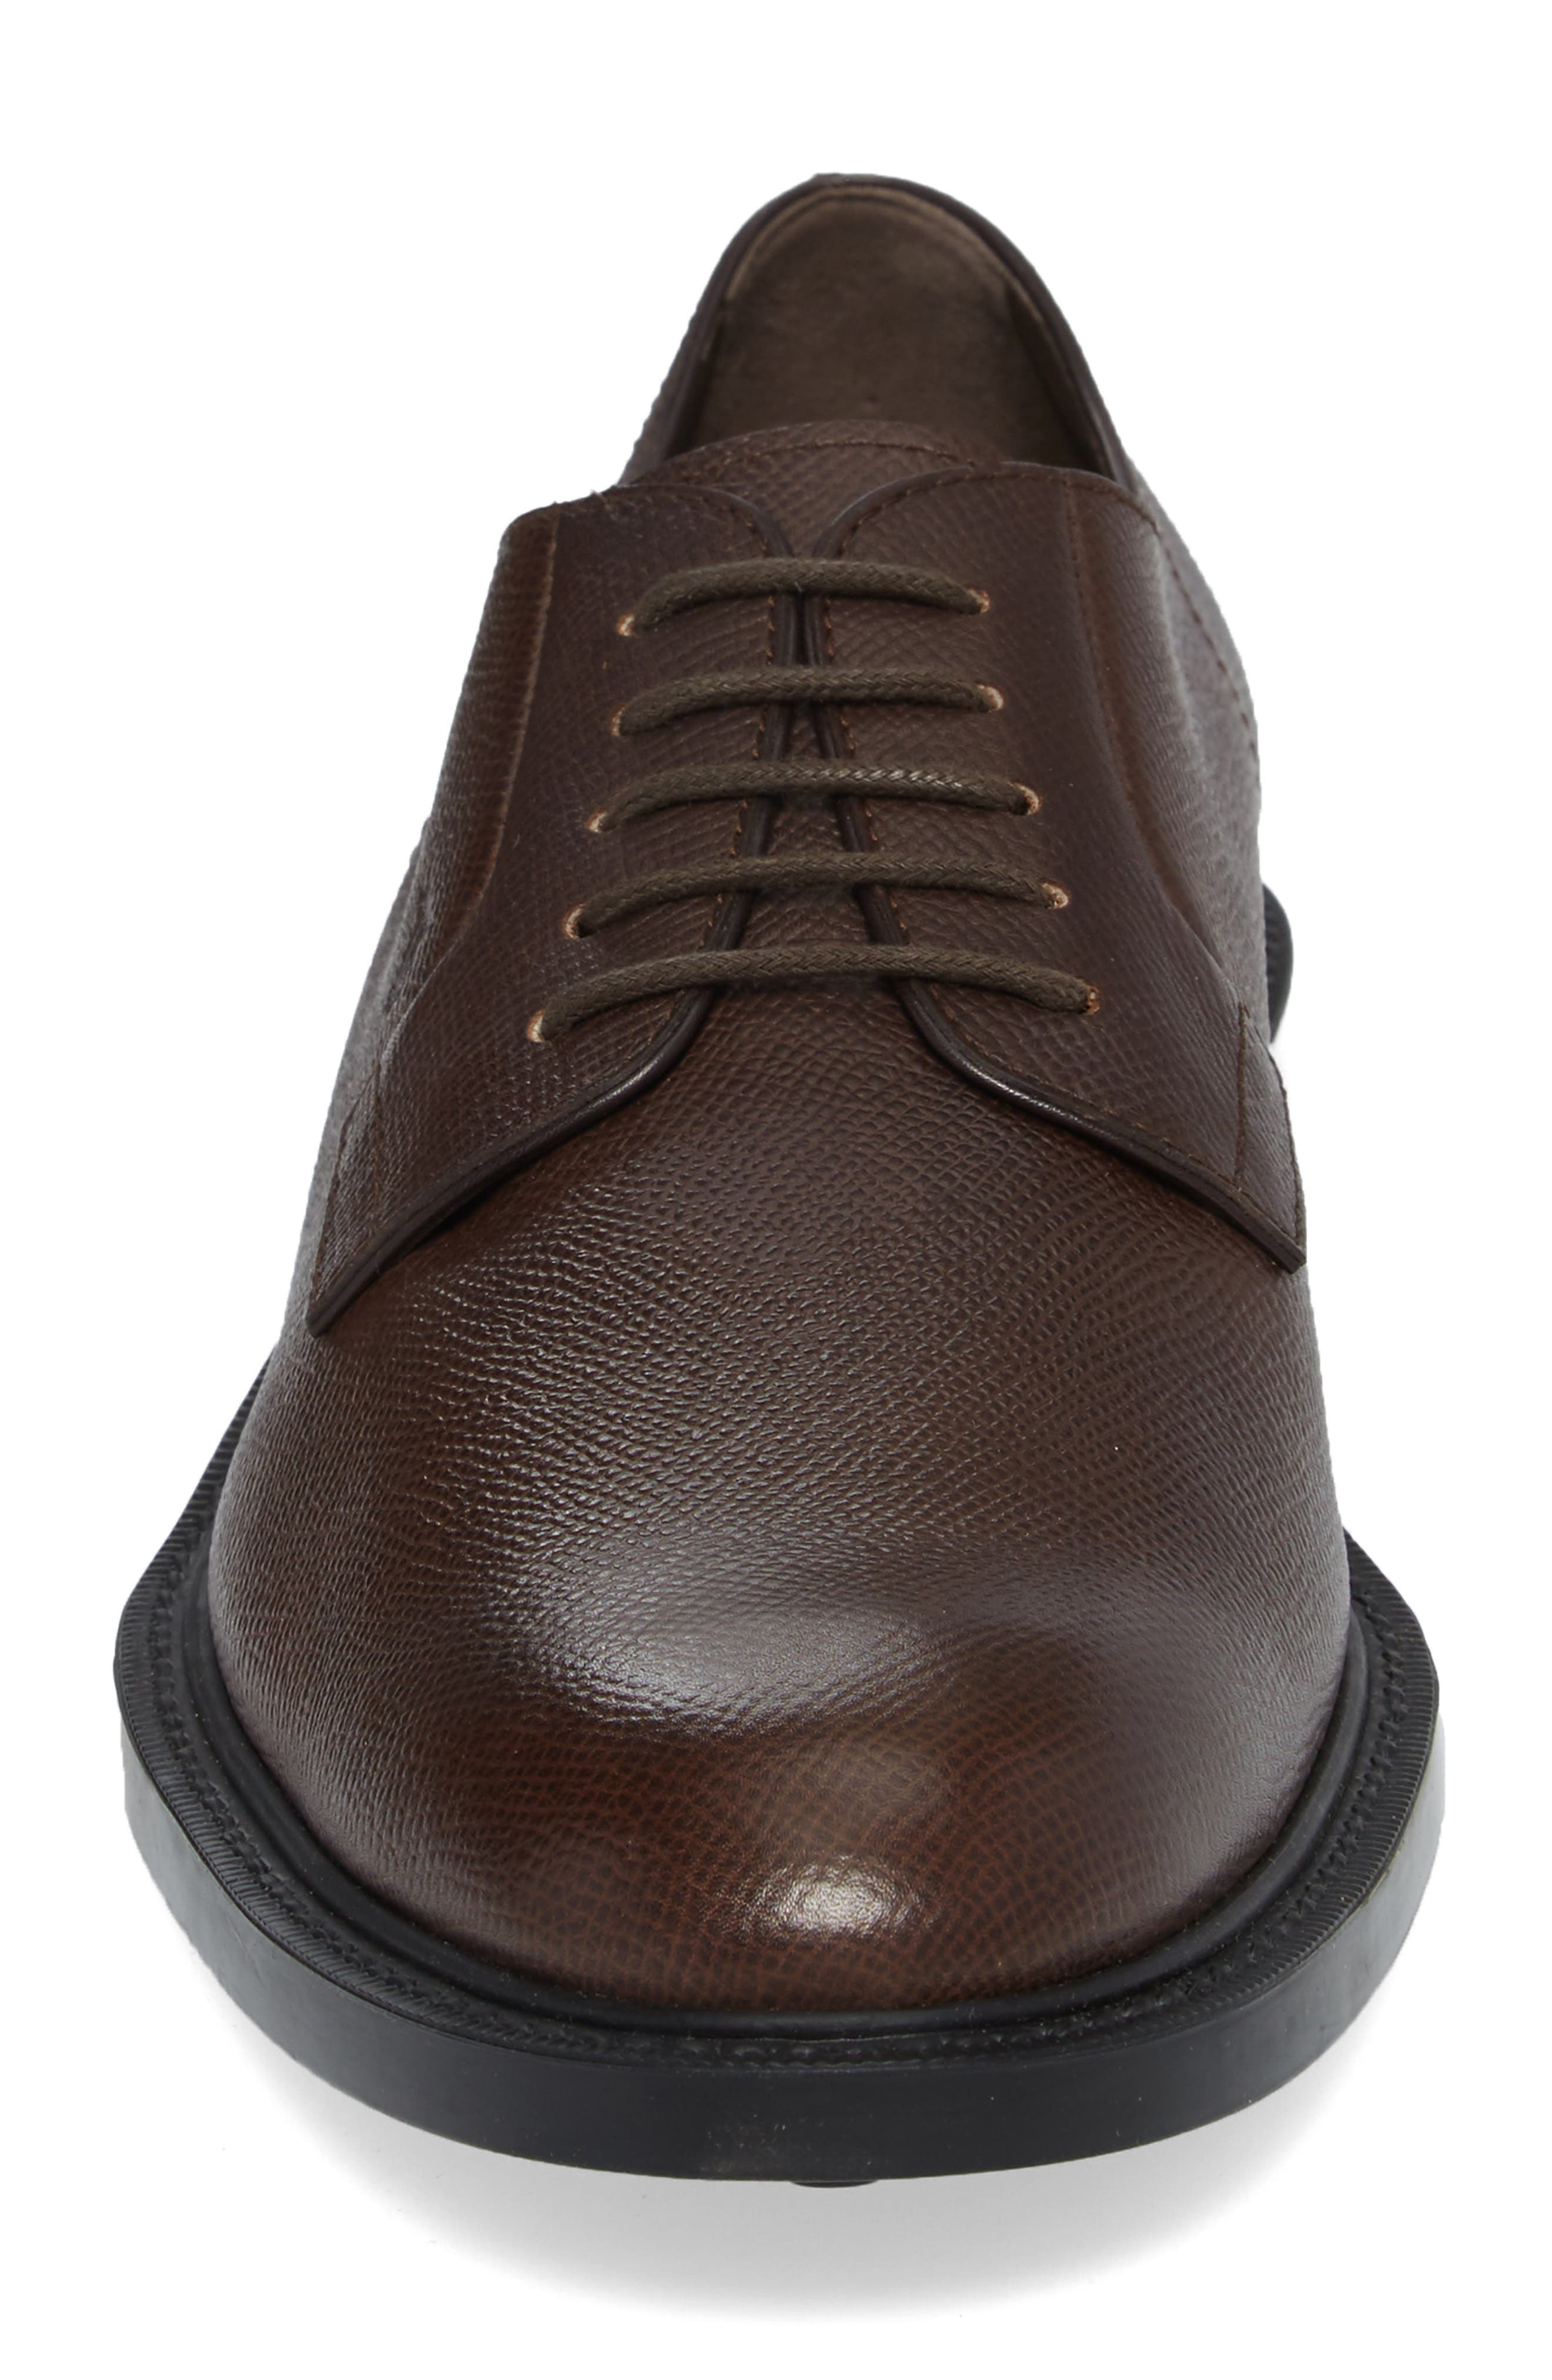 Clean Plain Toe Derby,                             Alternate thumbnail 4, color,                             Brown Textured Leather